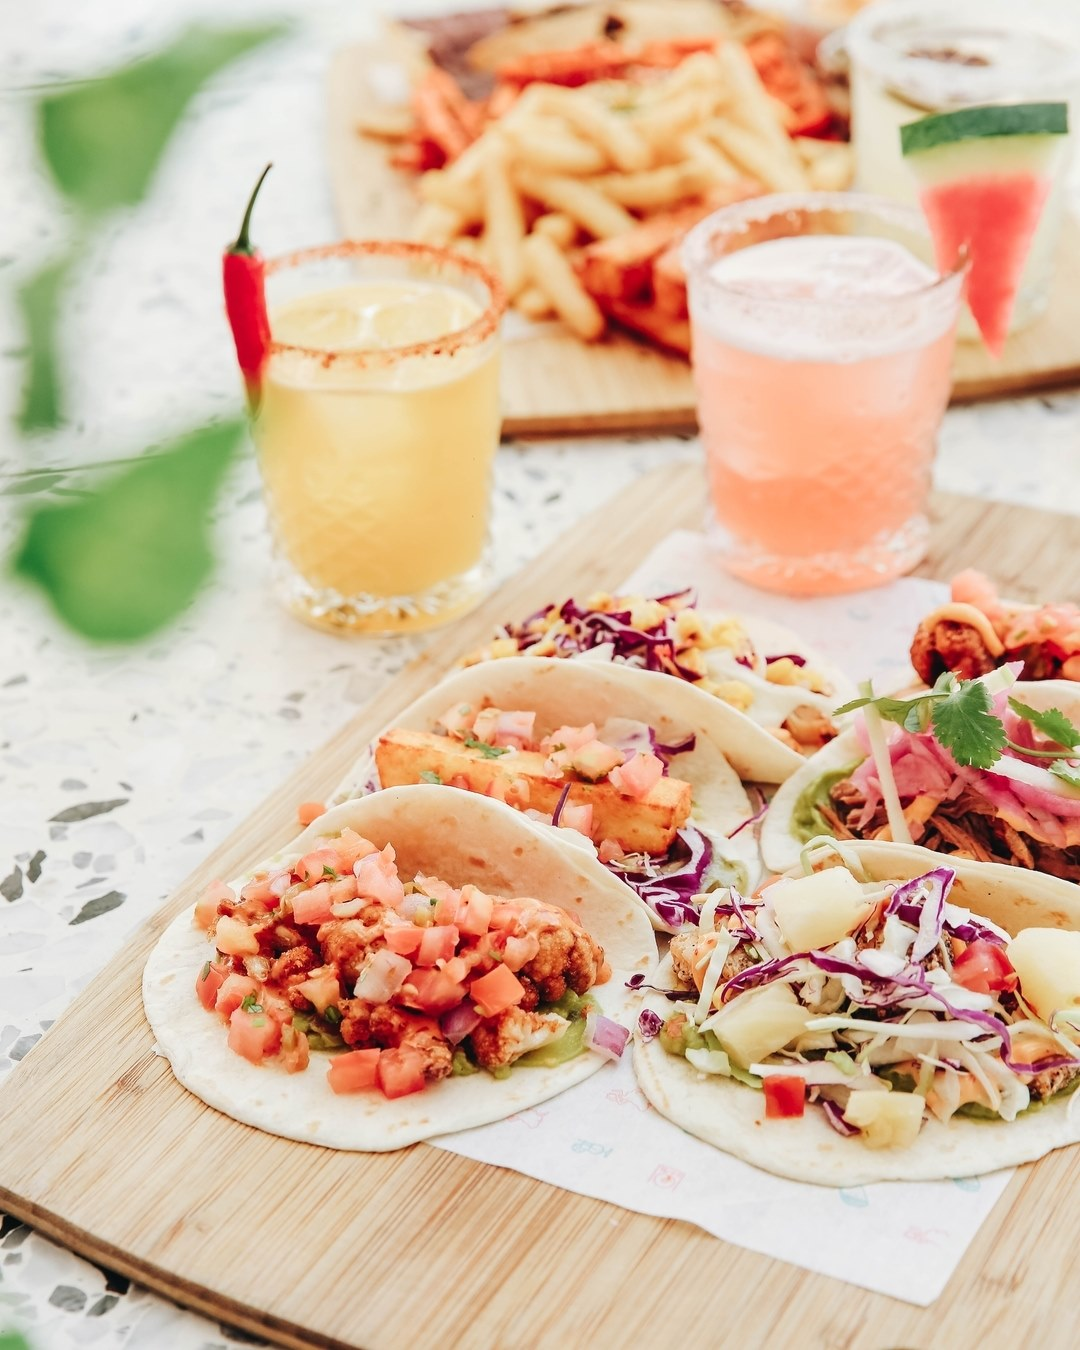 a plate of tacos and a cocktail